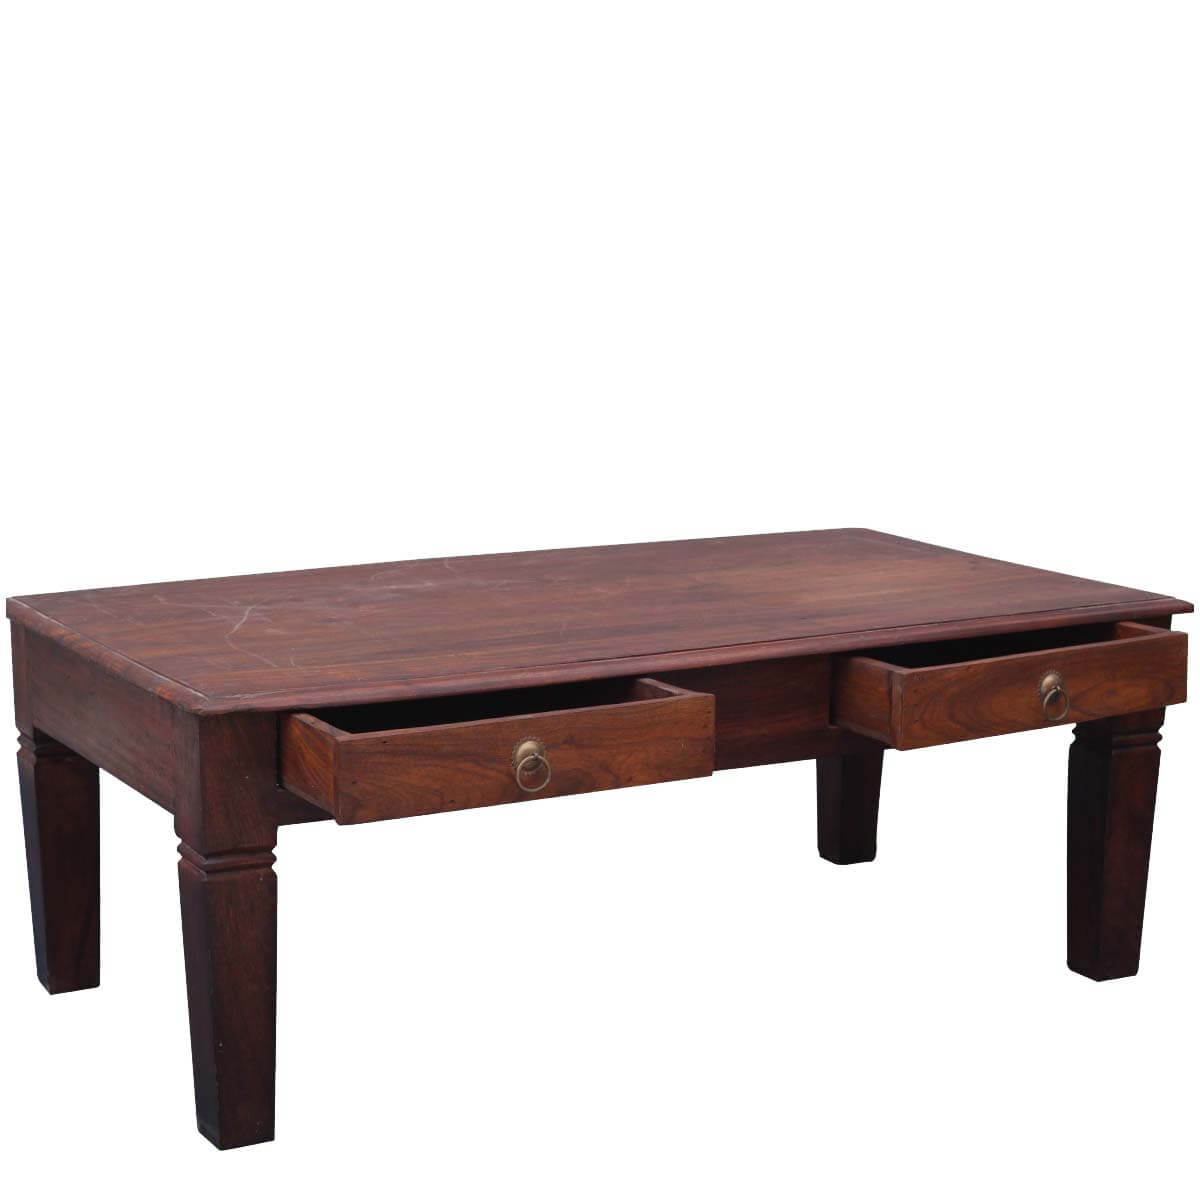 Solid Wood Rustic Coffee Table W Storage Drawers